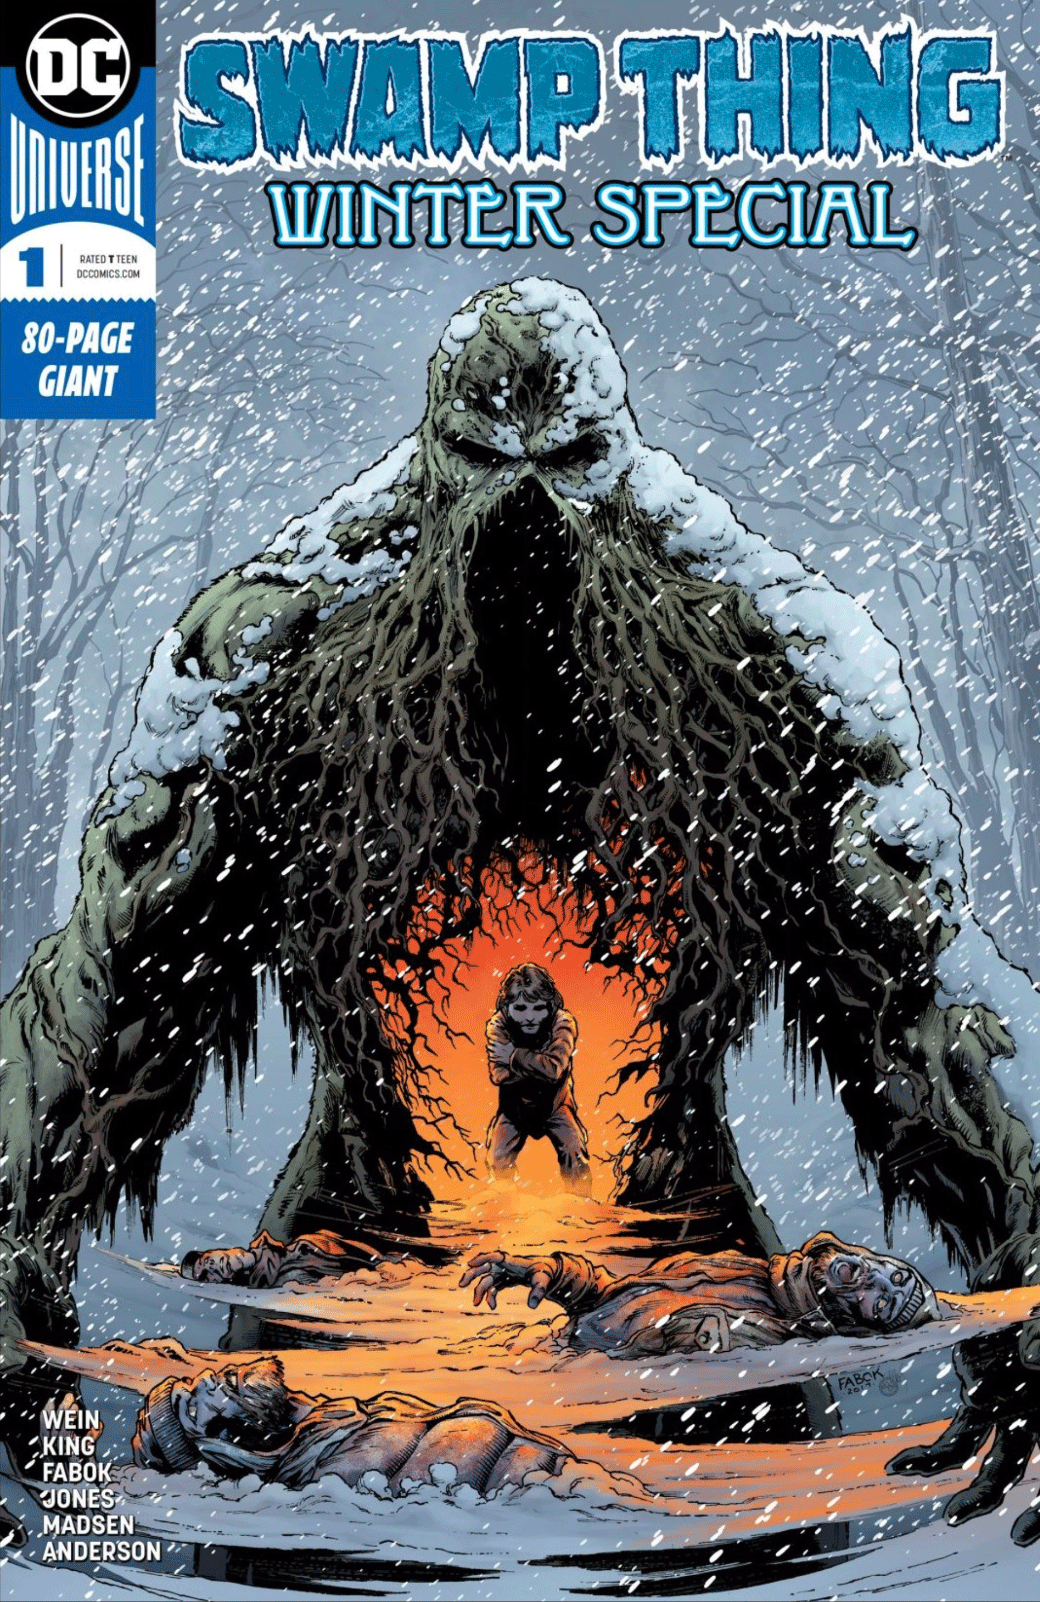 Swamp Thing Winter Special cover. Swamp Thing in the snow. A child is pictured in his centre, huddling to warm itself.